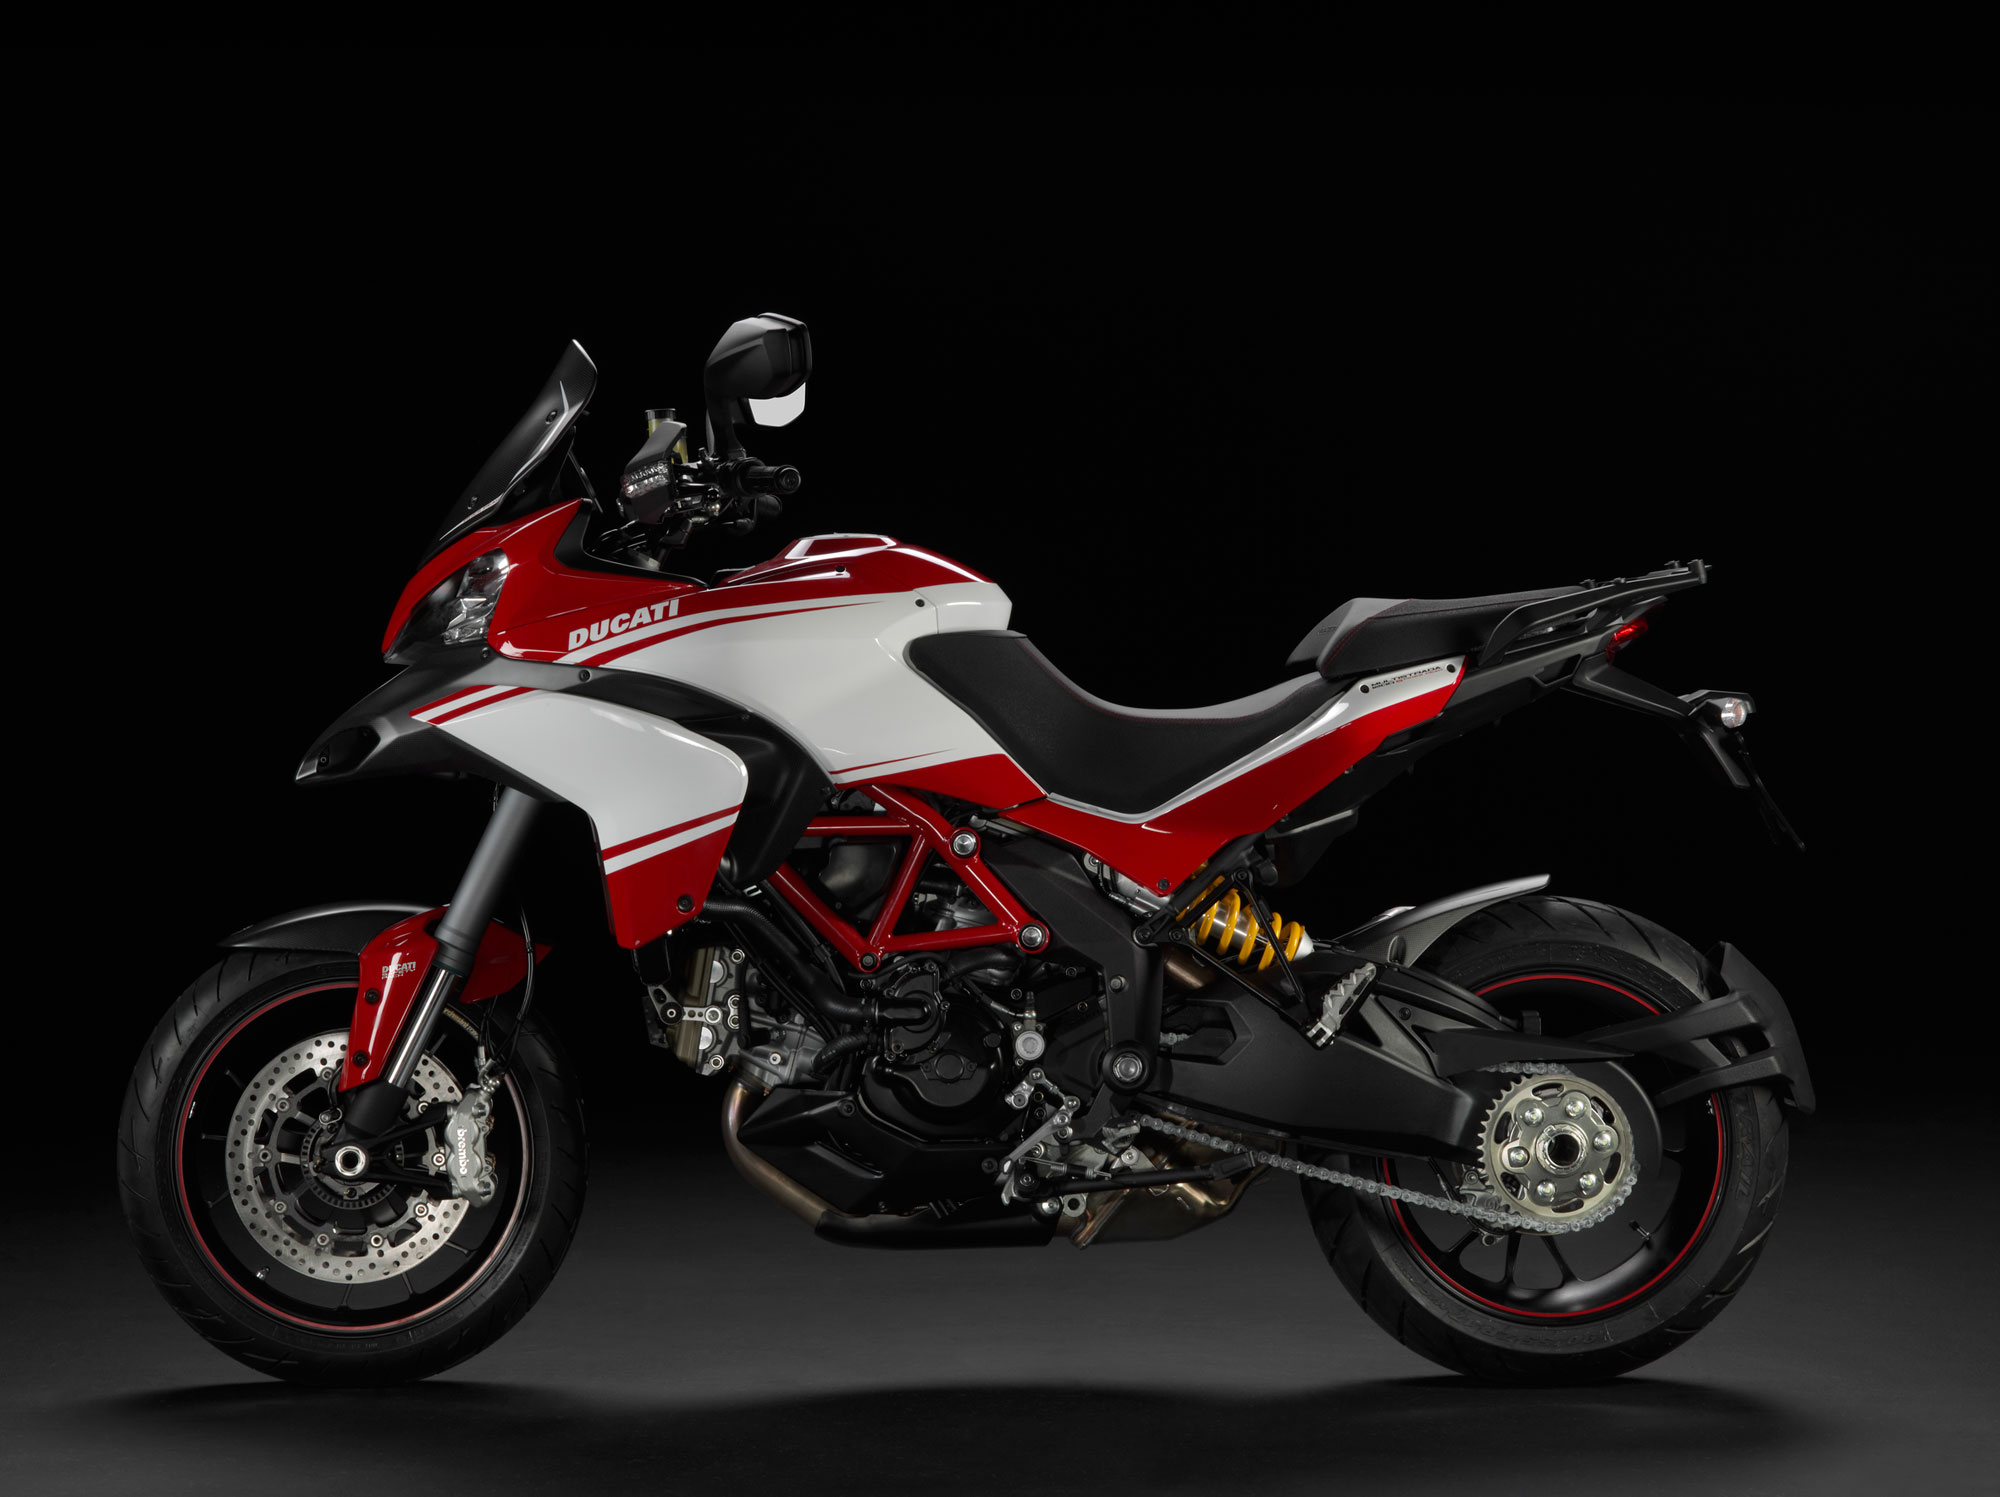 ducati multistrada 1200 s pikes peak specs 2012 2013. Black Bedroom Furniture Sets. Home Design Ideas